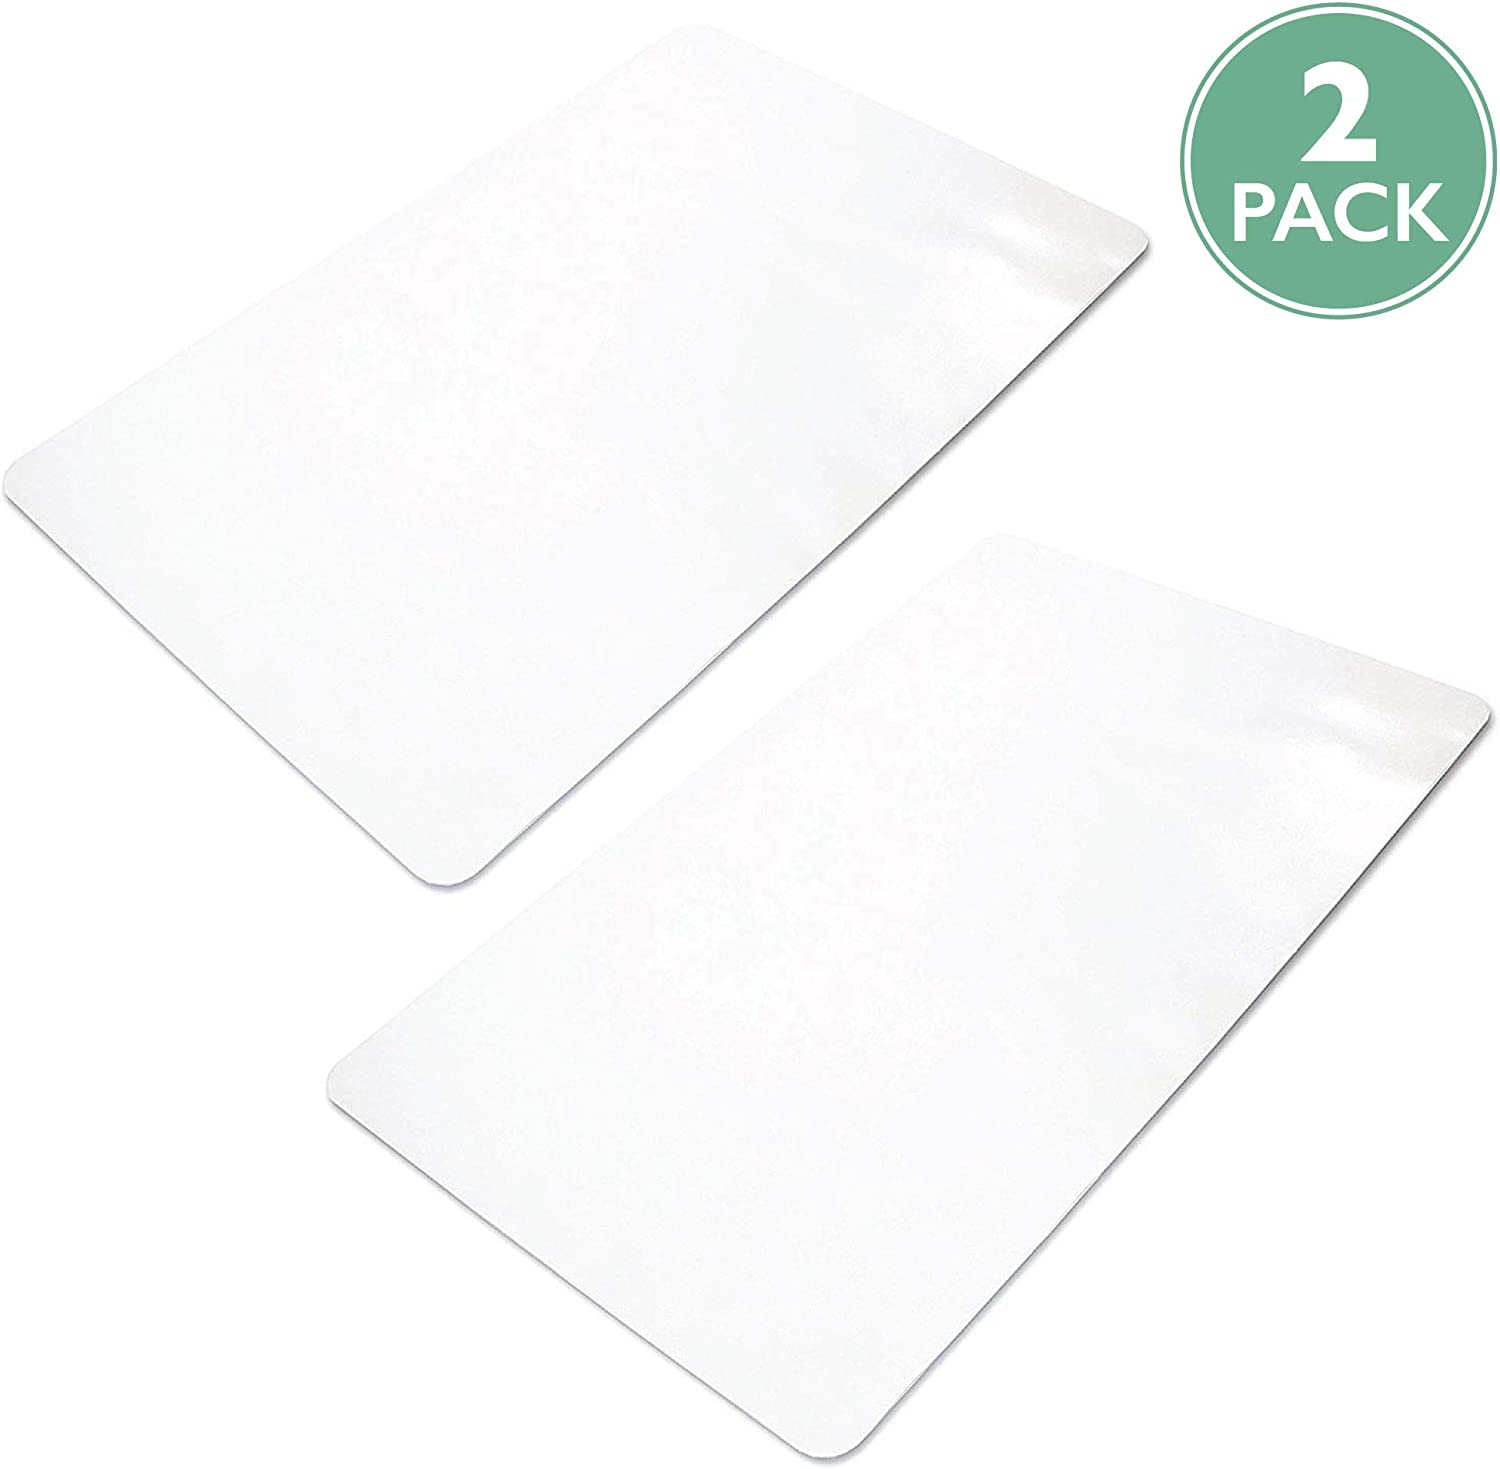 2 Pack Office Chair Mats for Hard Floors 36 x 48 - Clear Hardwood Mats for Desk Chairs